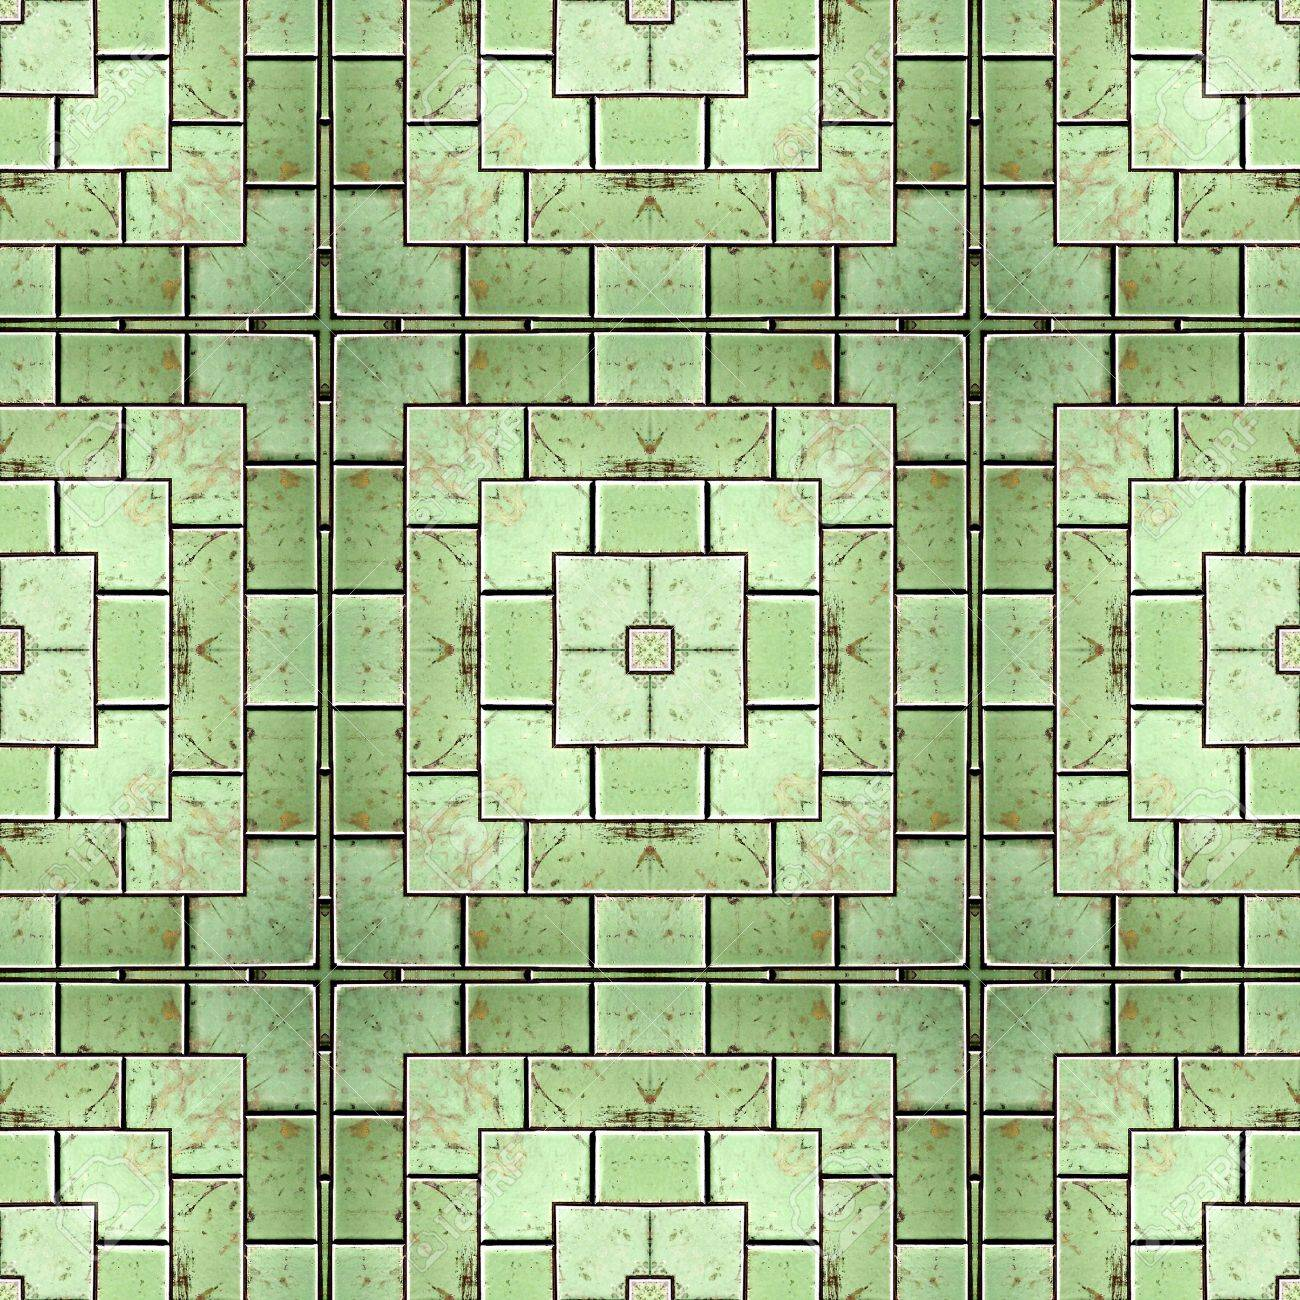 Seamless Ceramic Pattern, Aged Floor Tiles To Use As Wallpaper, Surface  Texture, Web